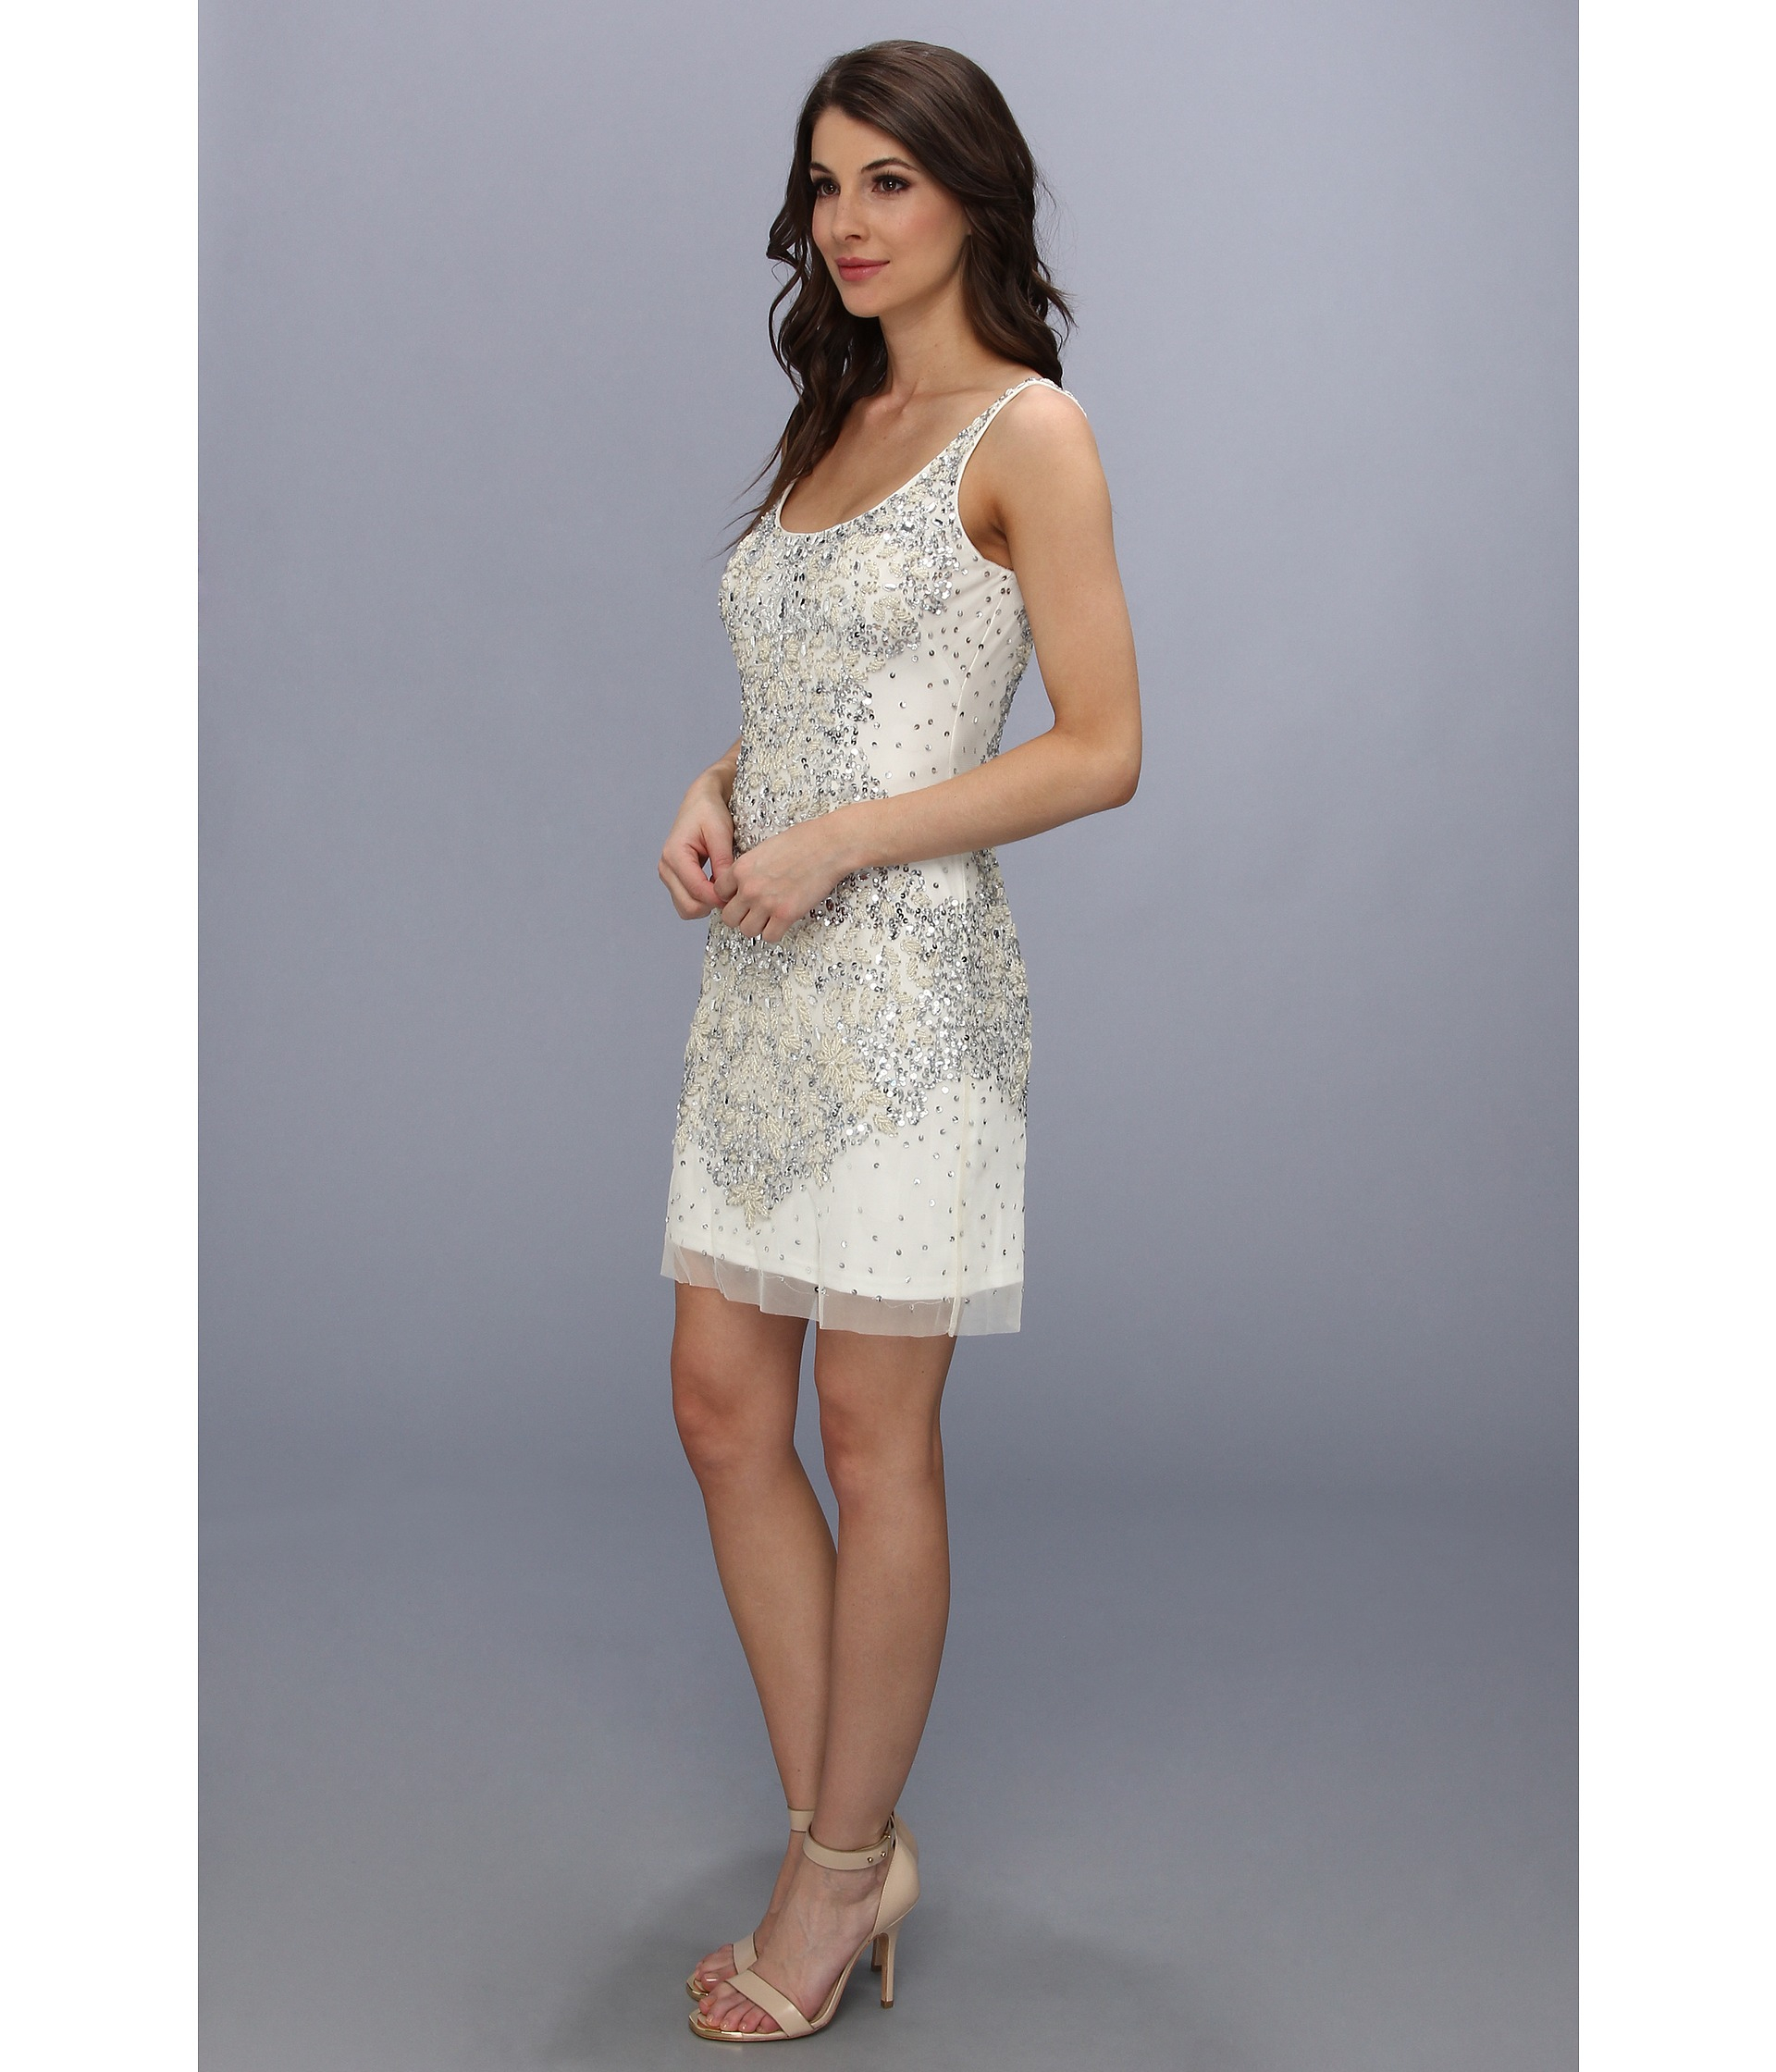 Adrianna Papell Ivory Dresses – fashion dresses